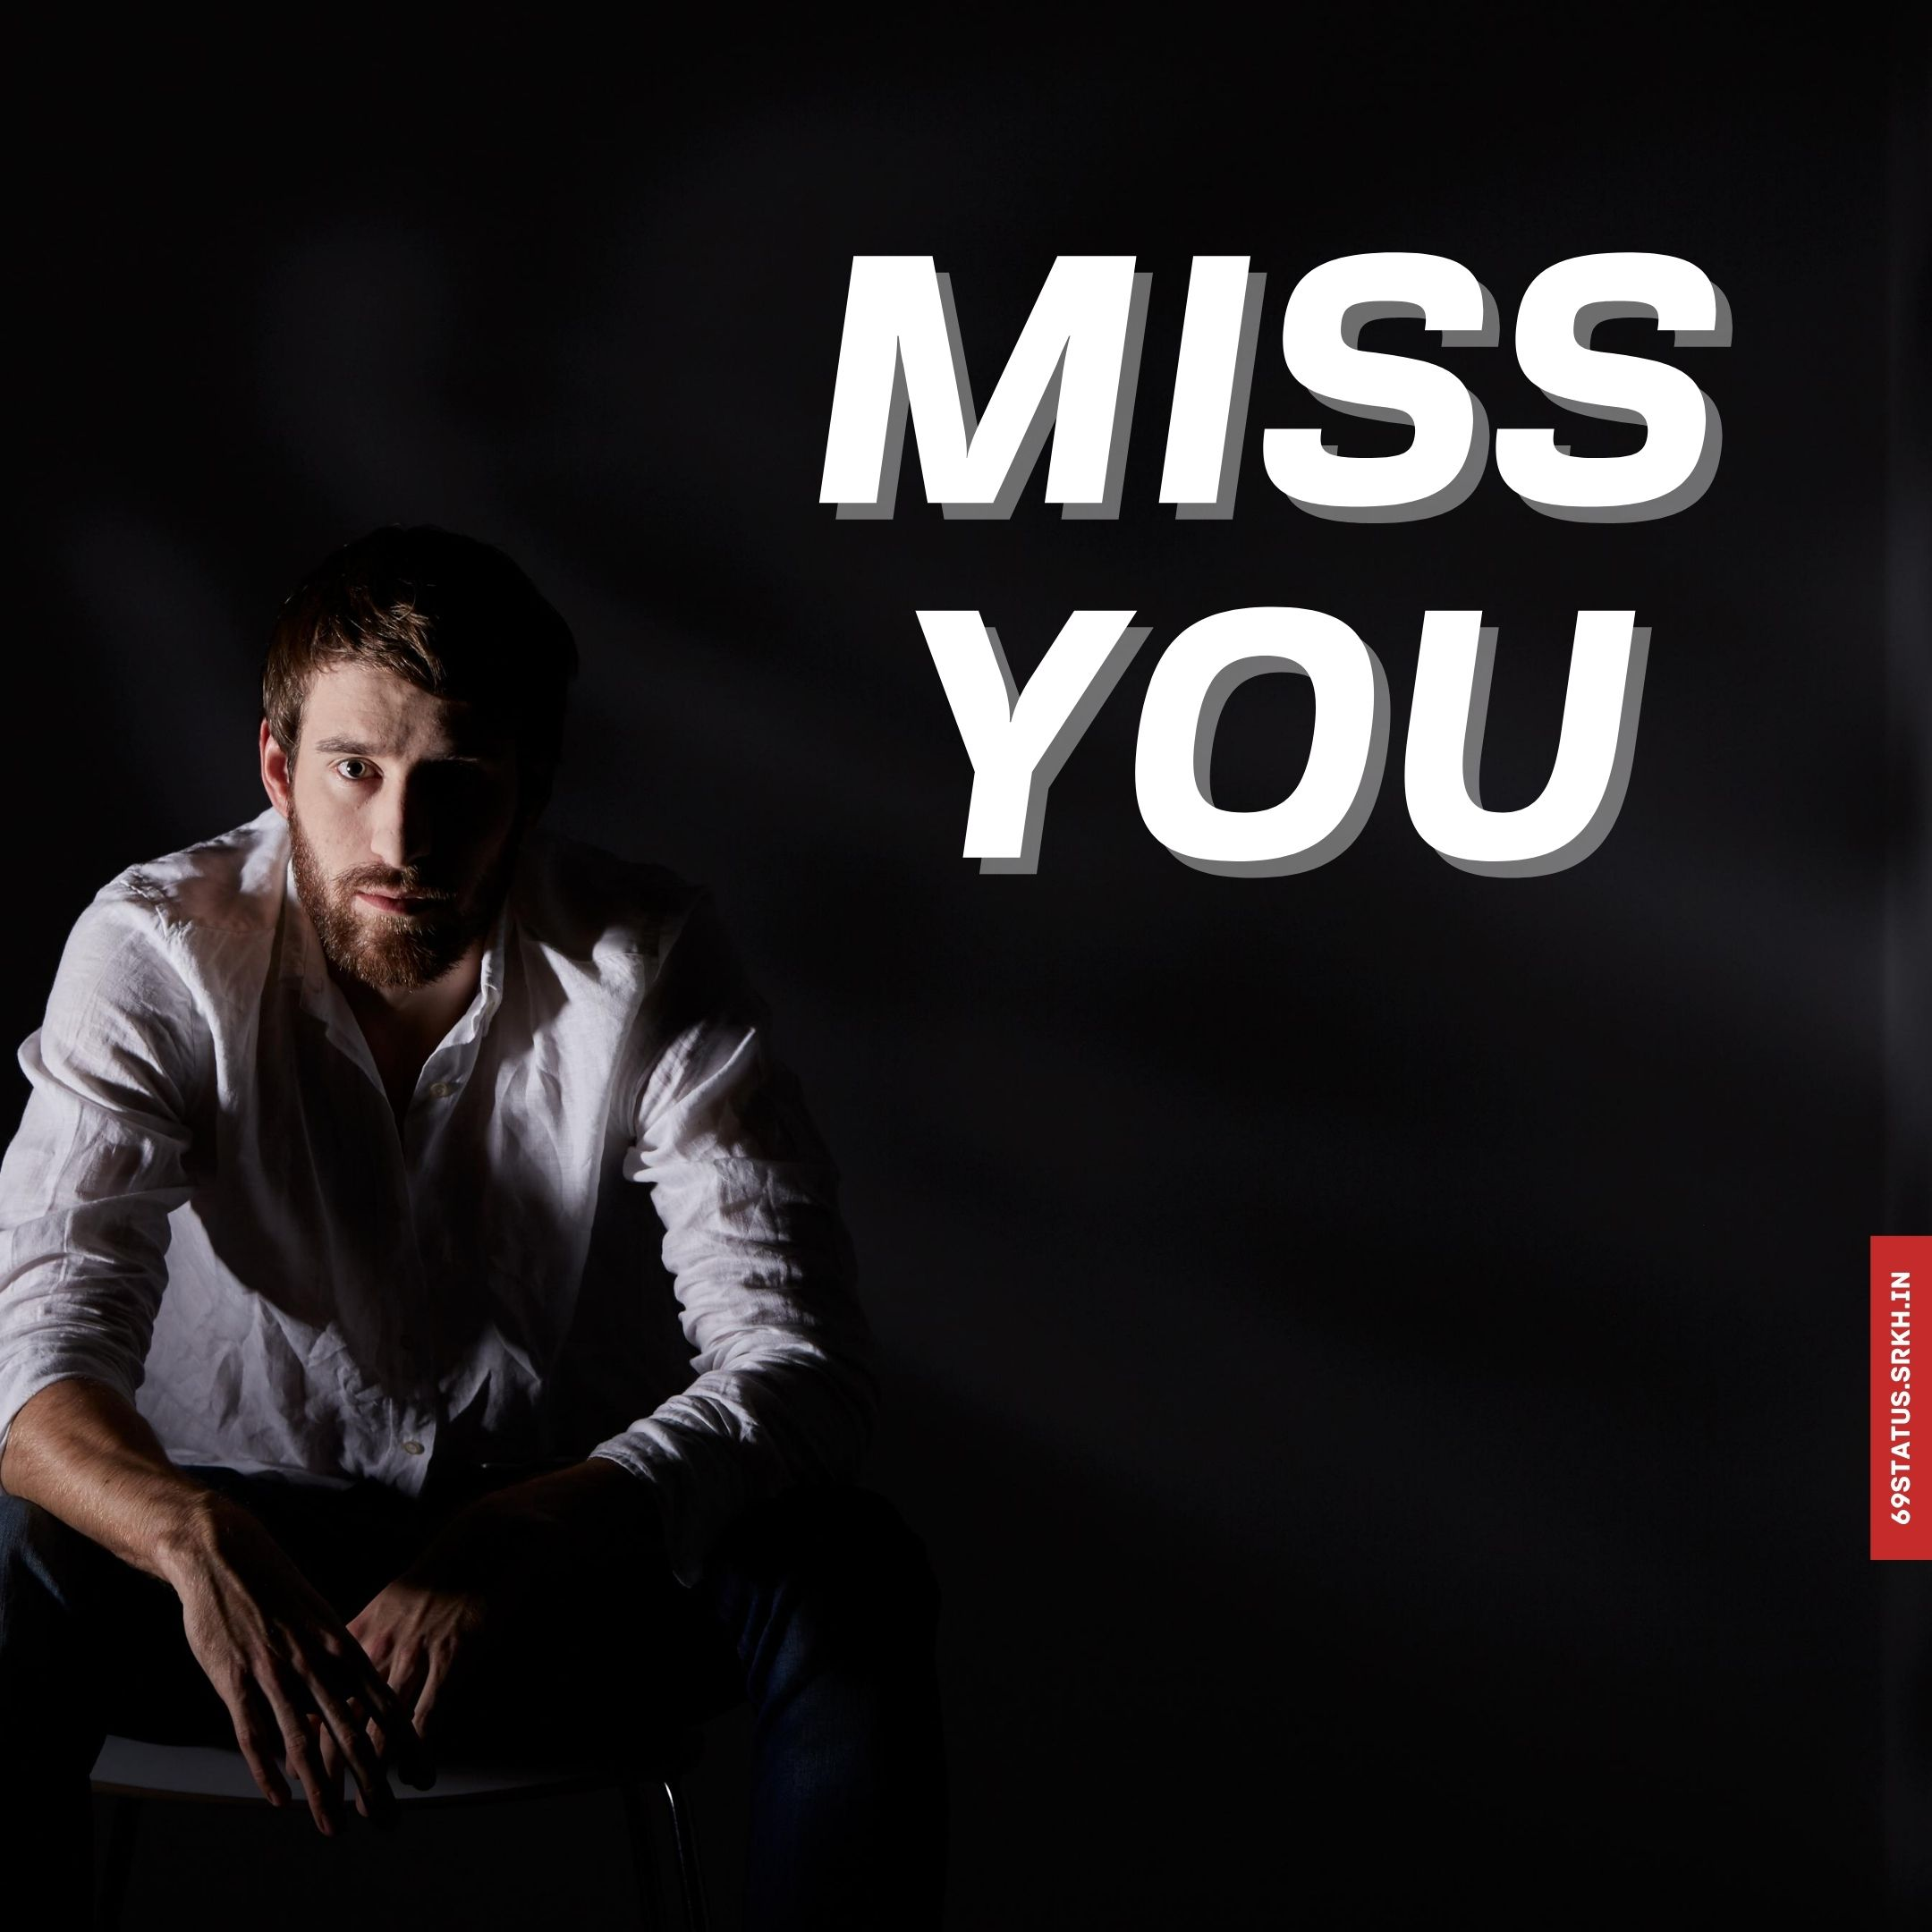 Miss you images full HD free download.